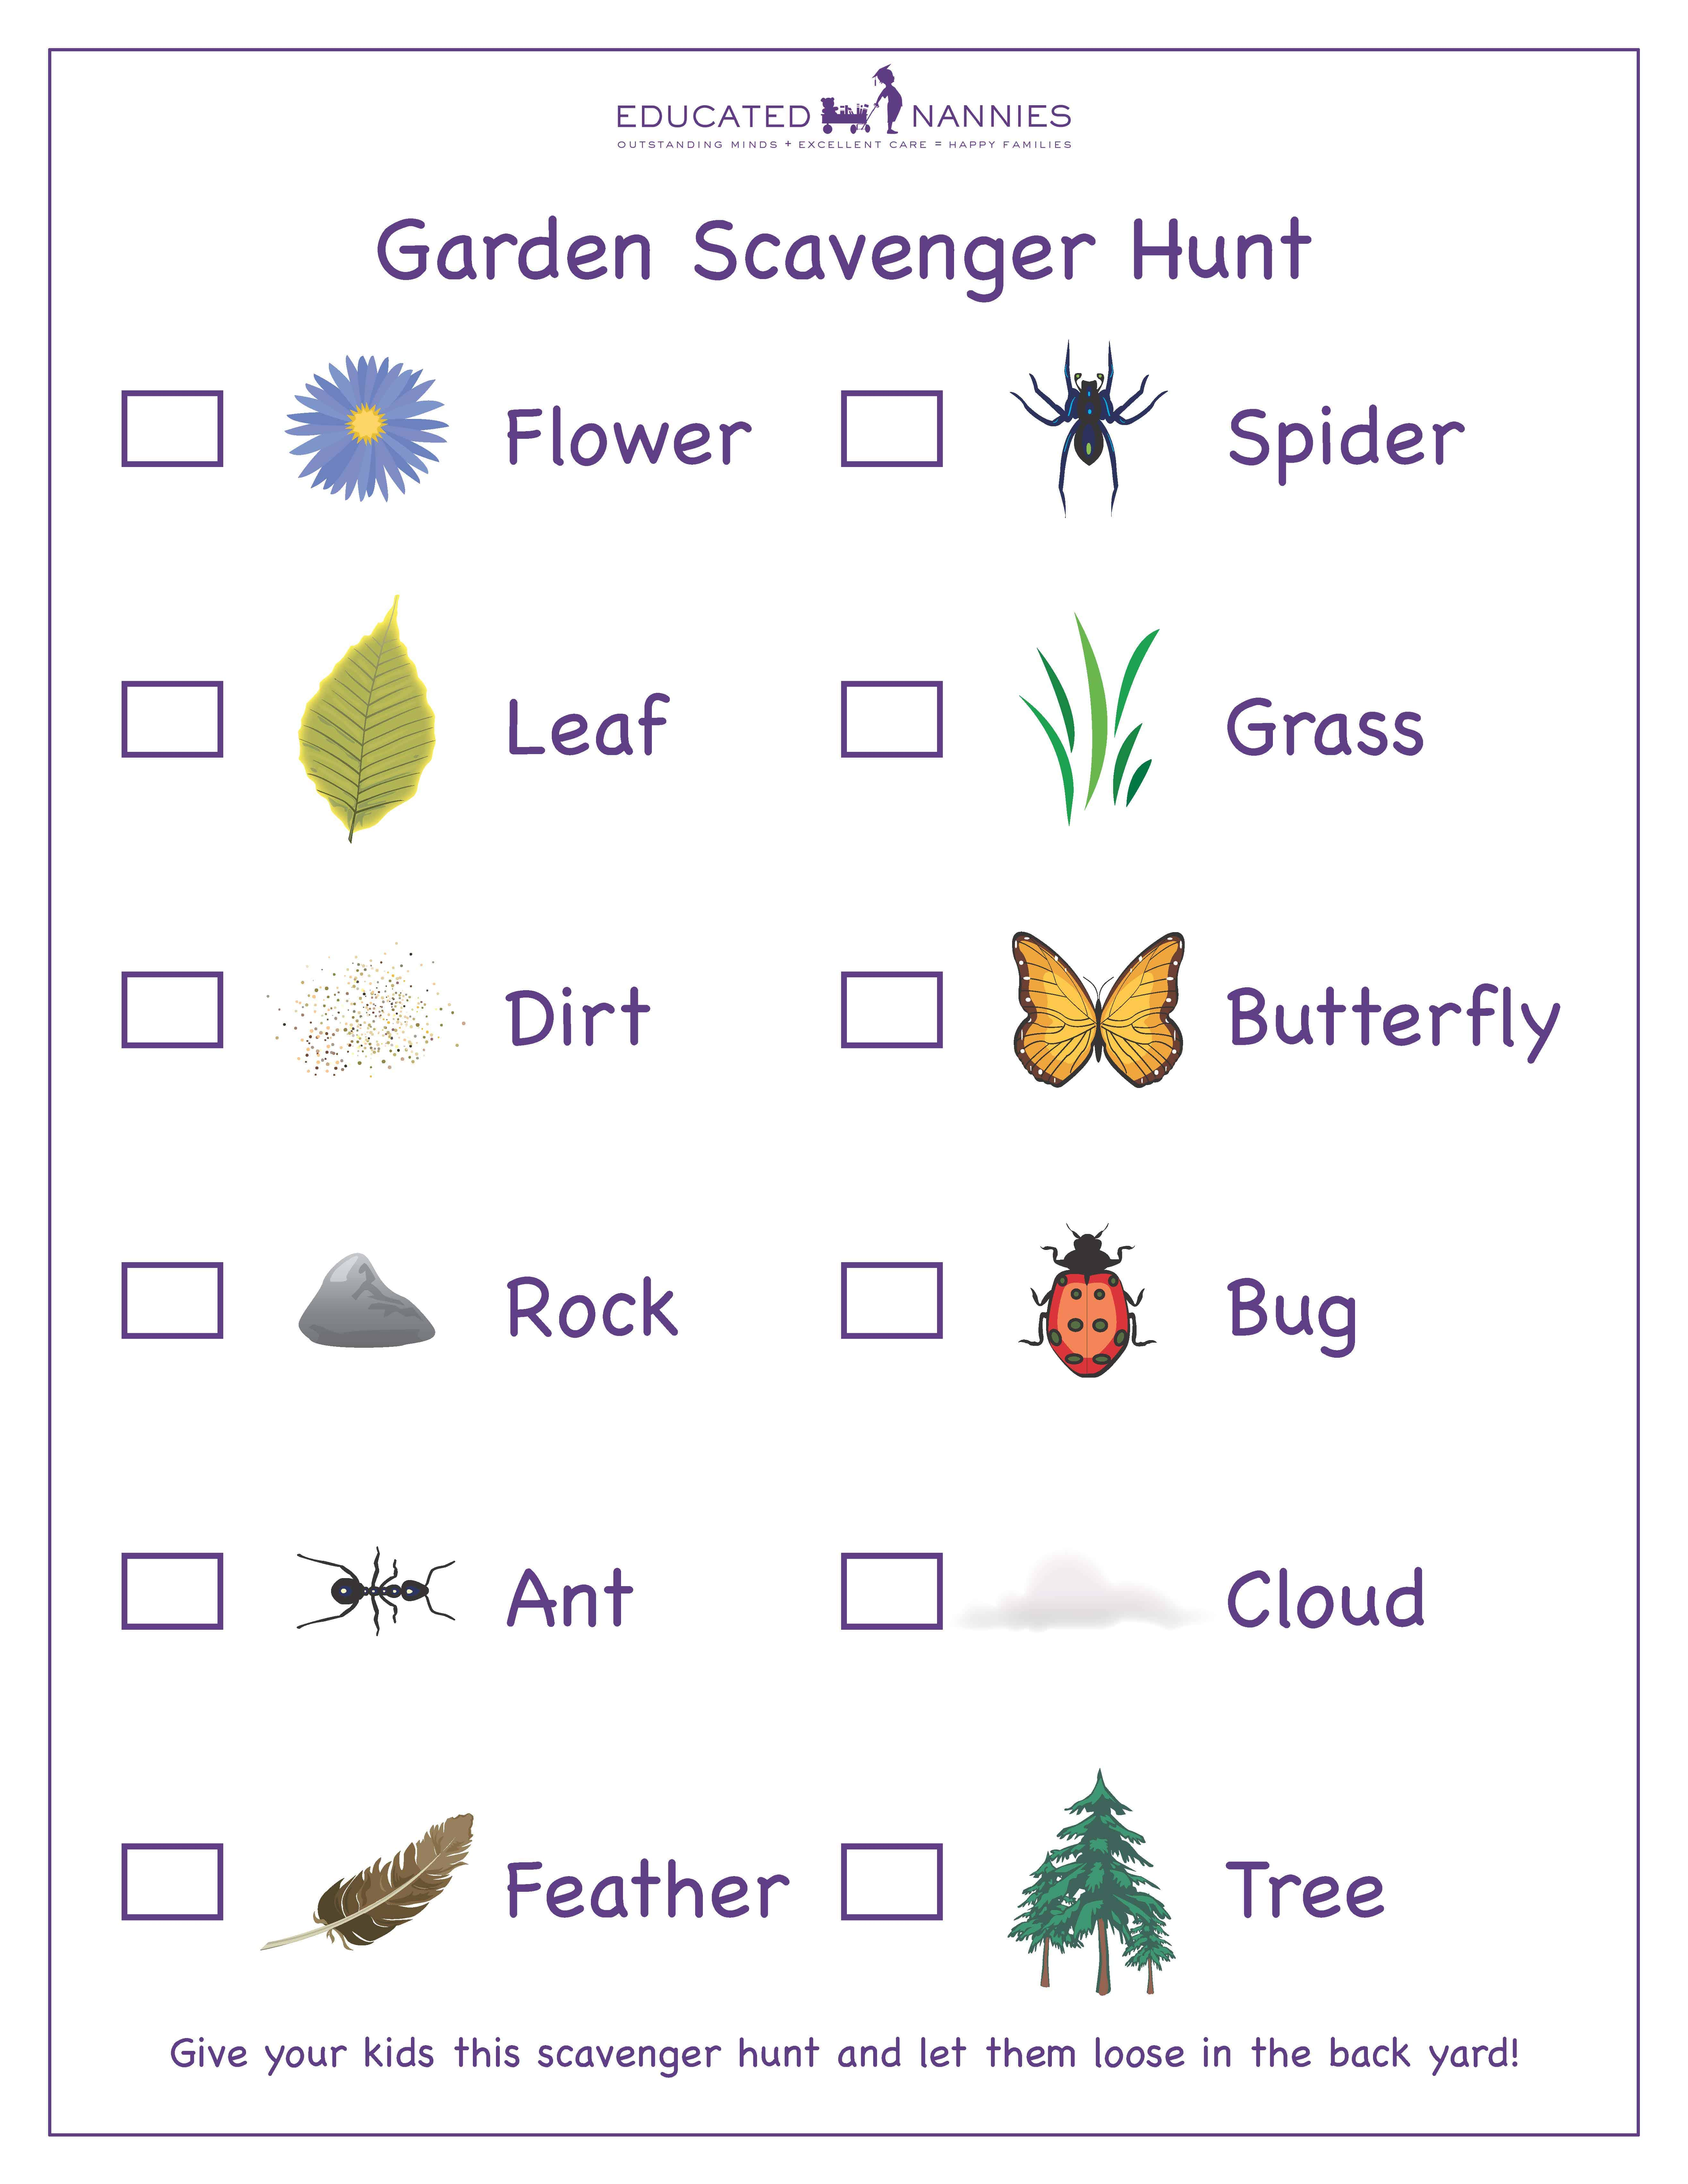 Gardening With Your Kids Is More Than Just Playing In The